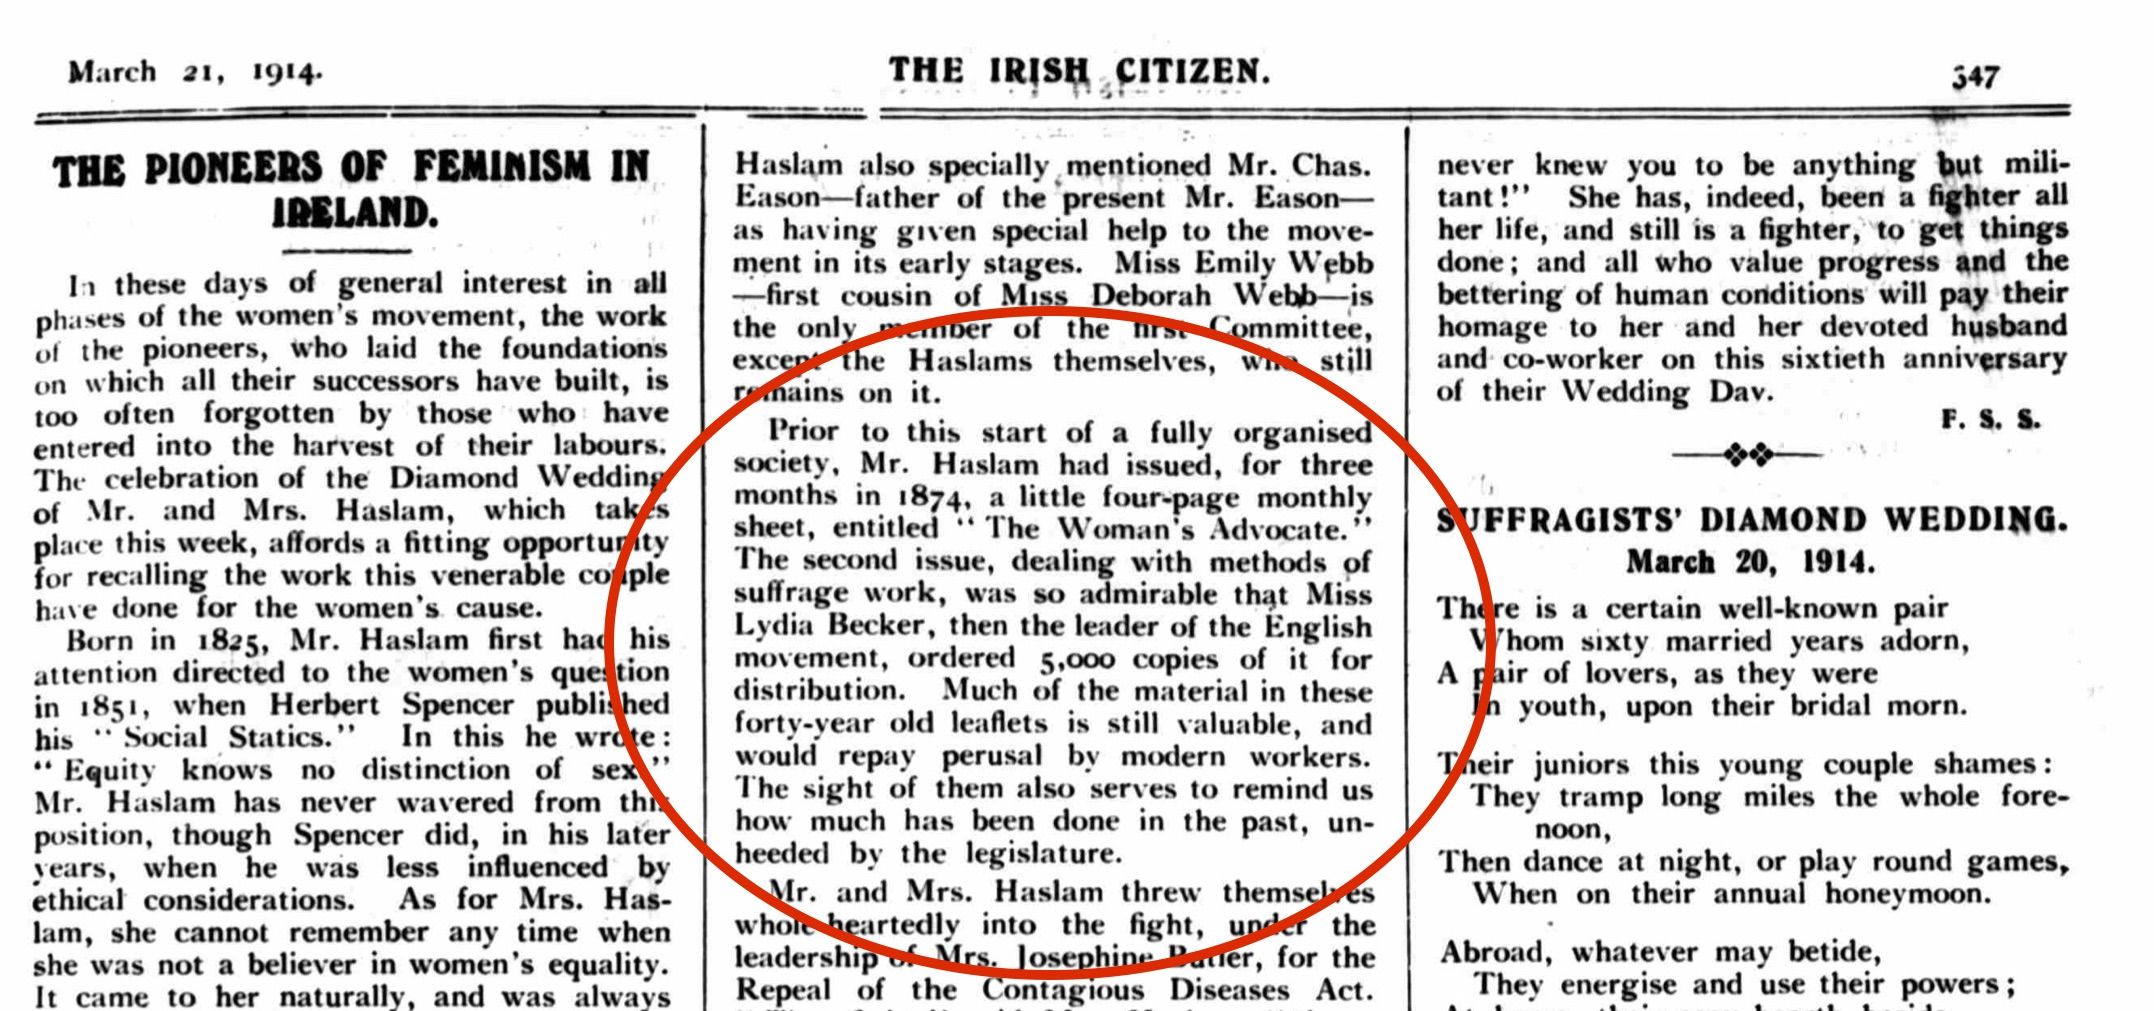 Irish Citizen Saturday 21 March 1914. Check out the fabulous poem to the right too - we are especially loving the idea of an annual honeymoon?!